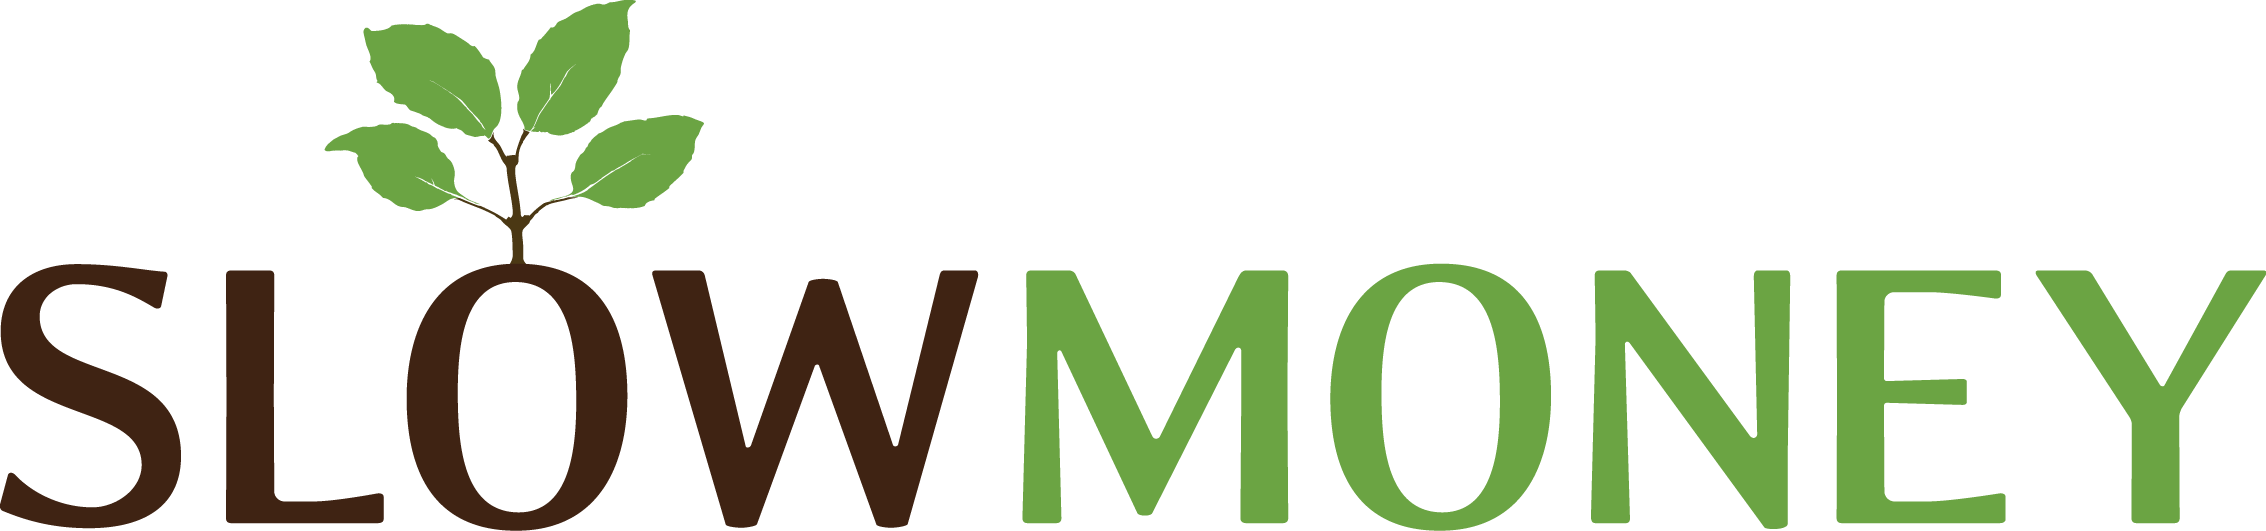 SlowMoney-logo.png